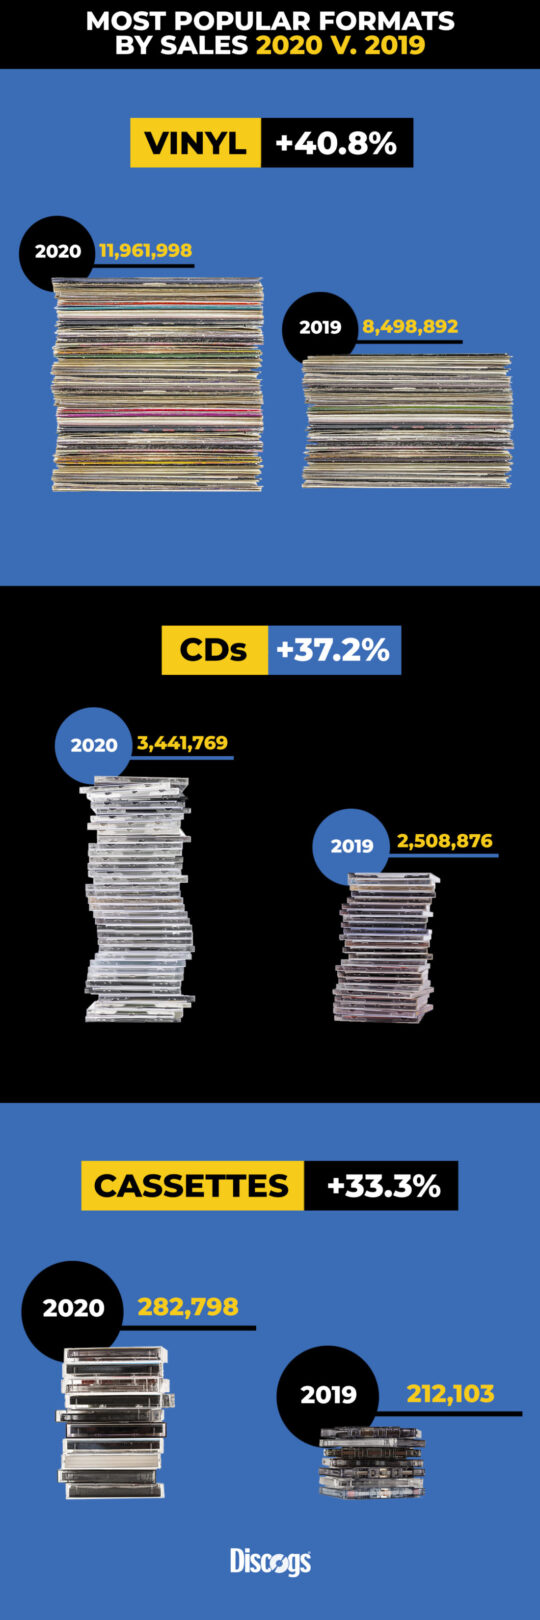 2020 end of year report sales by format updated 1100x3301 2 540x1620 - The State of Discogs: End-of-Year Report #vinyl